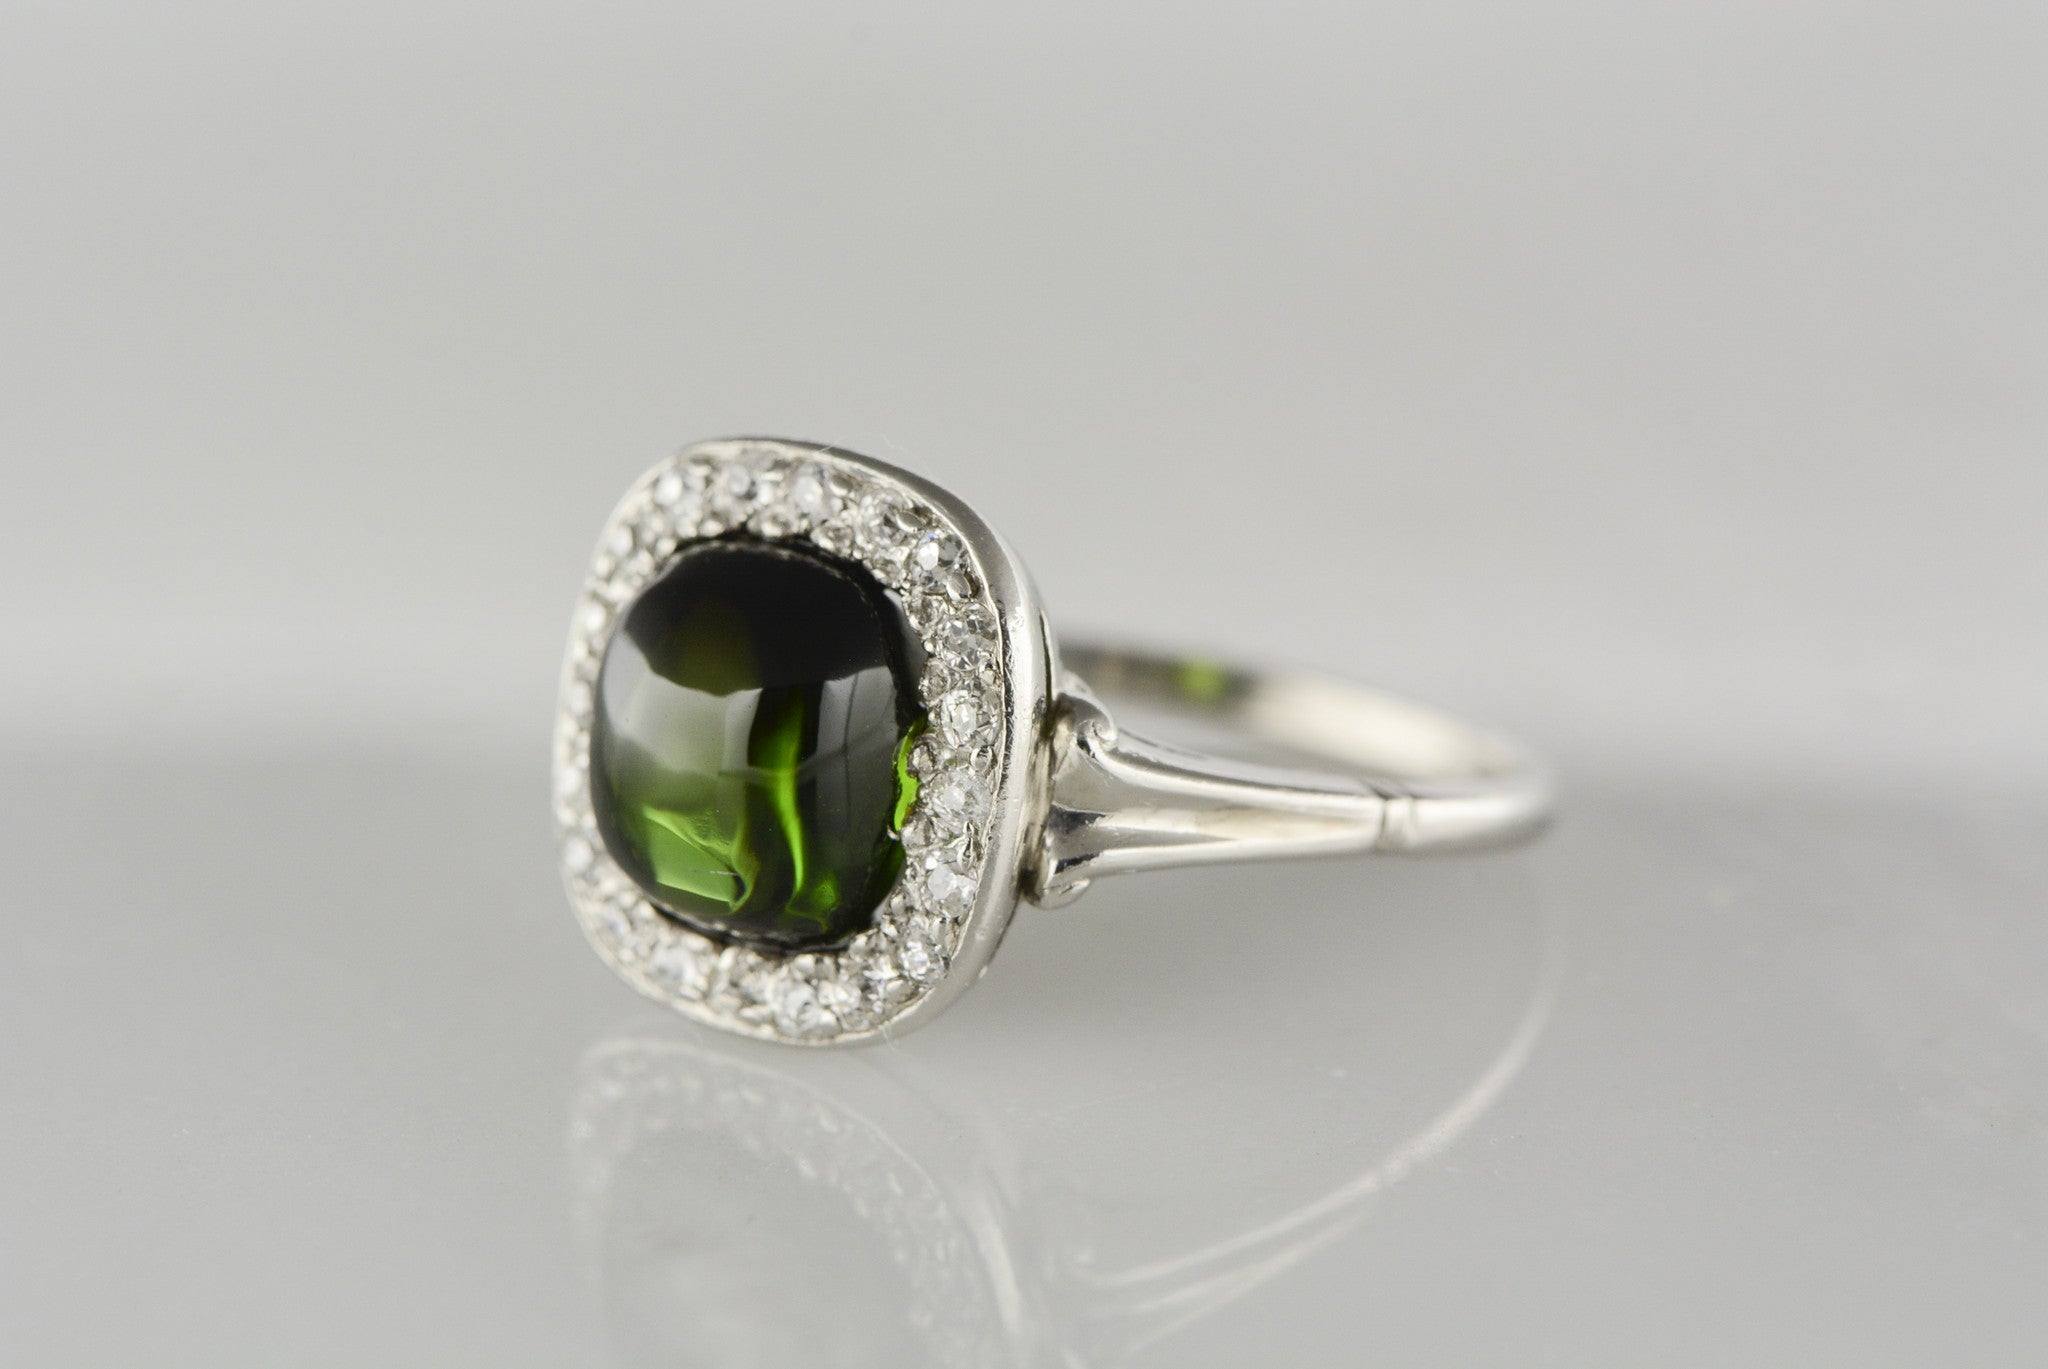 adams form product david engagement rings ring green jewelry fine img free tourmaline